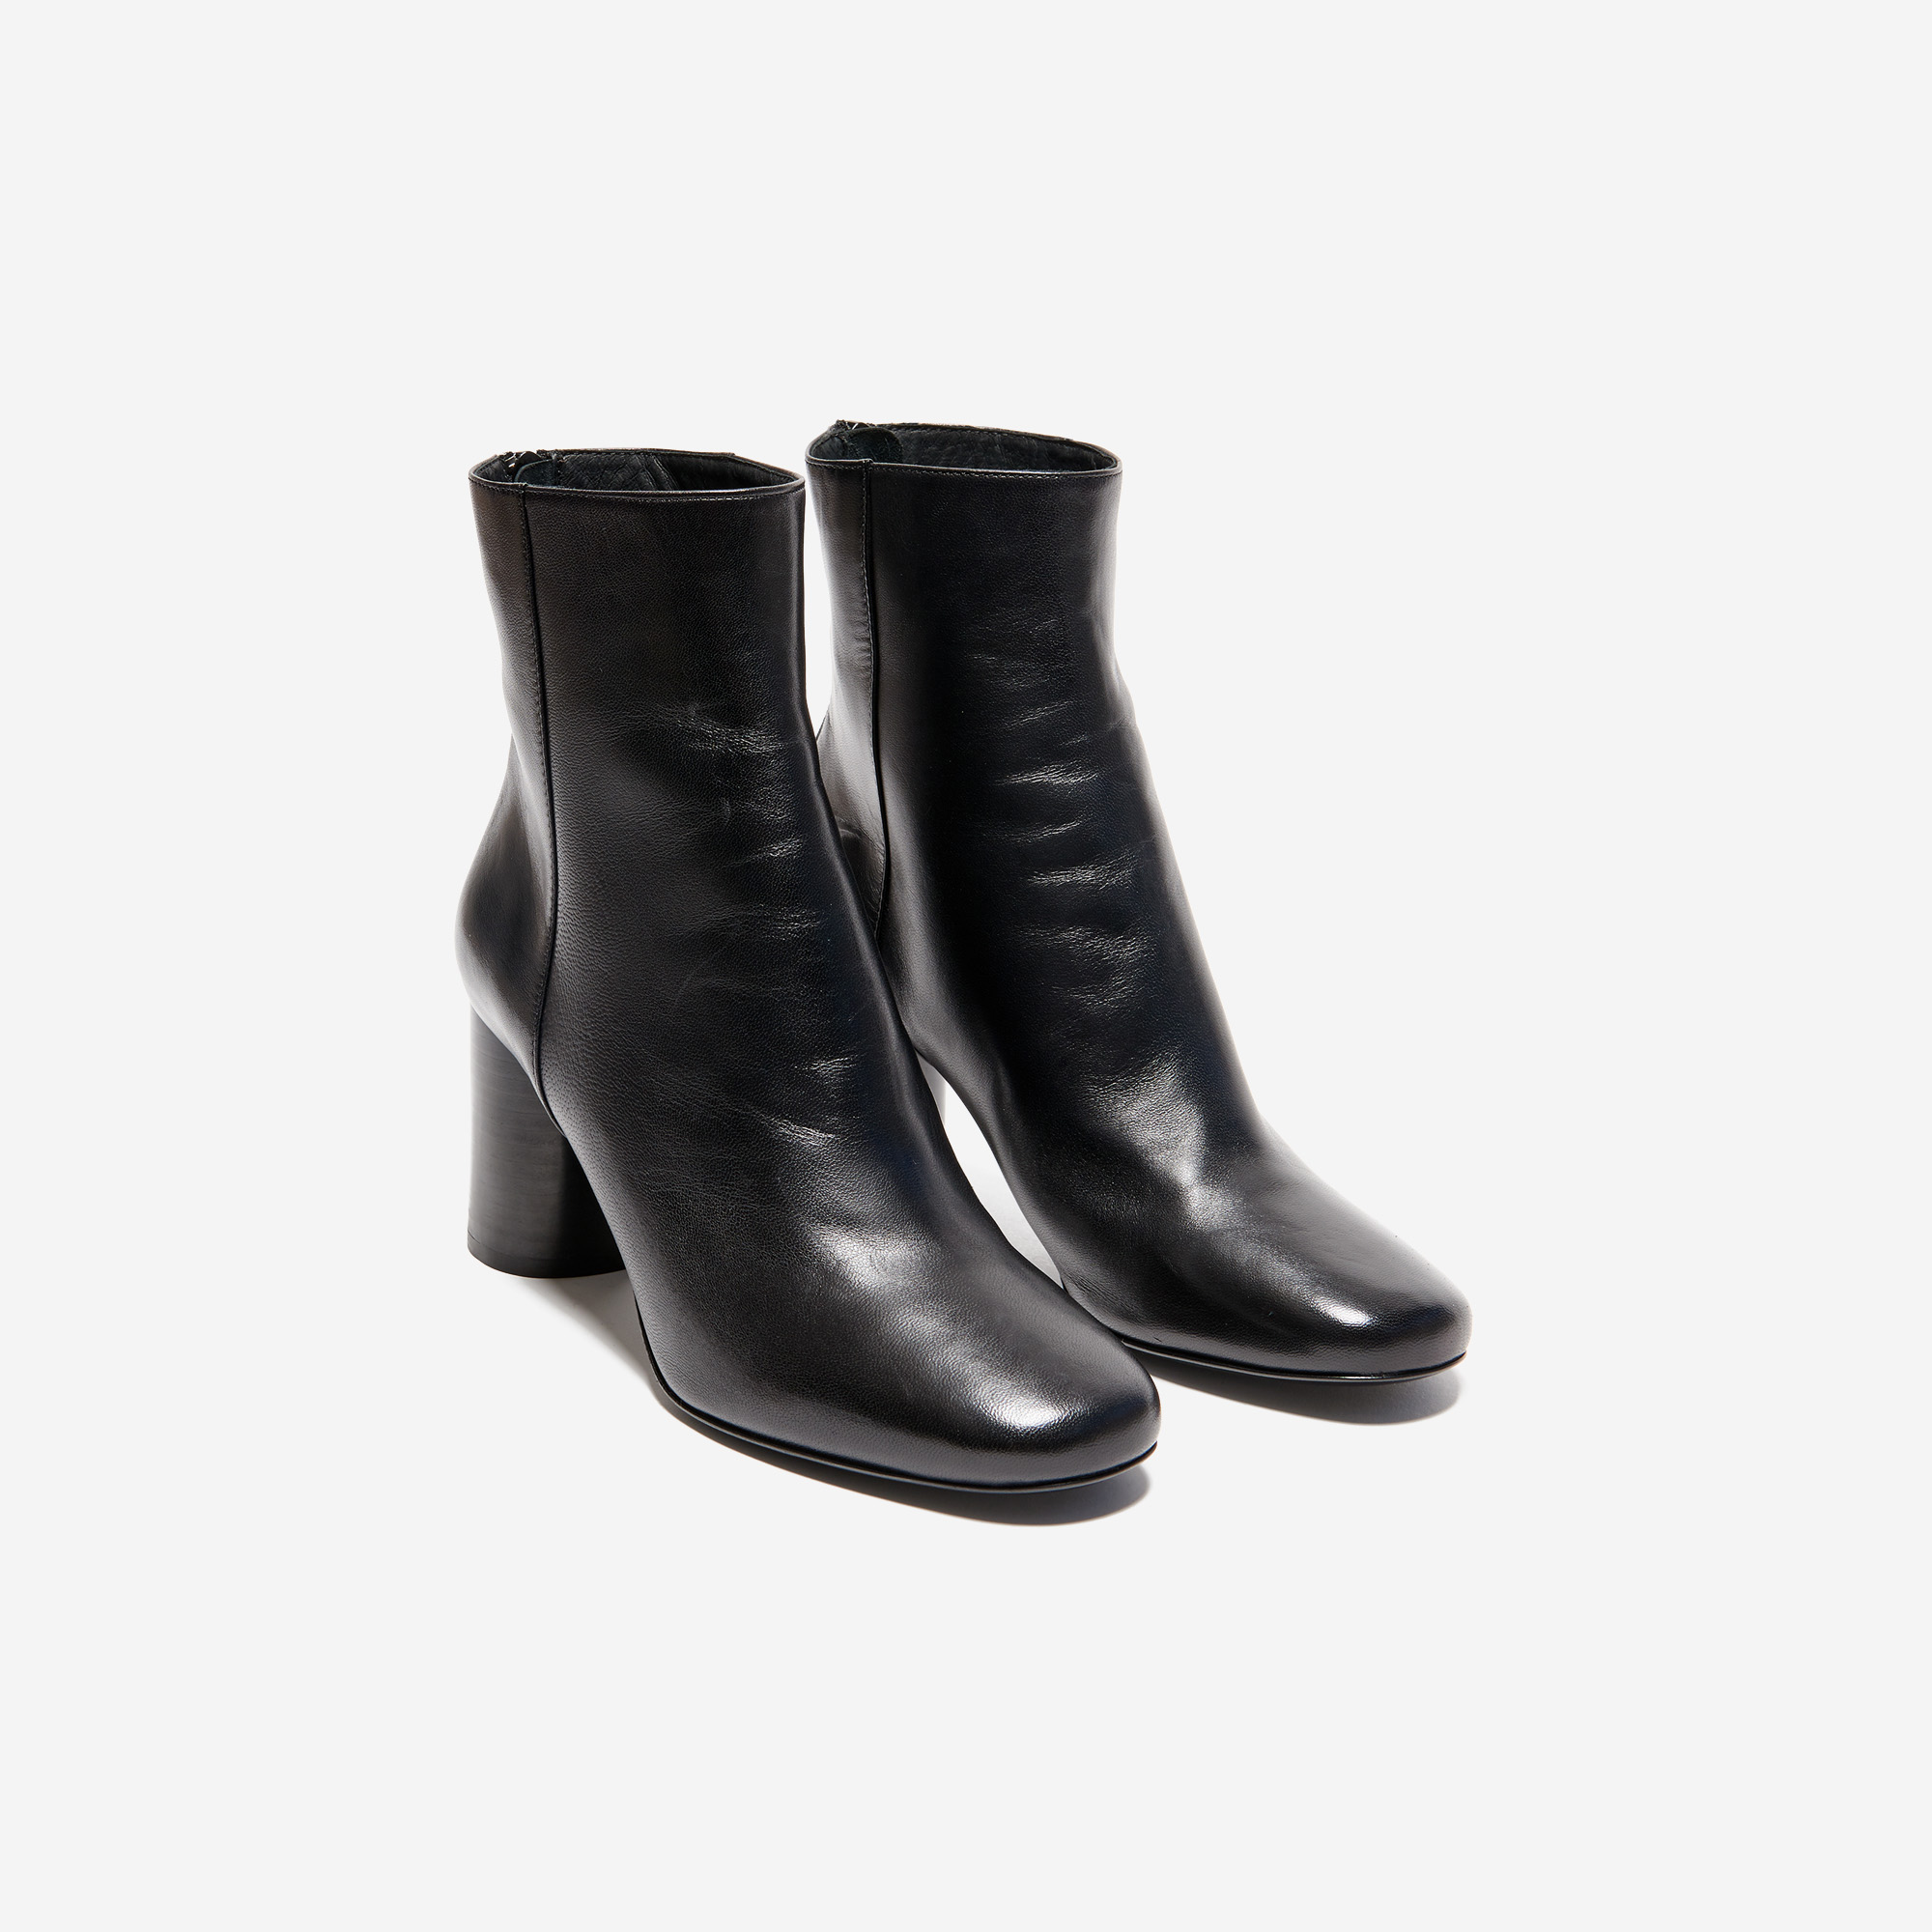 dde34bc48a82f ... Leather ankle boot   Shoes color Black ...